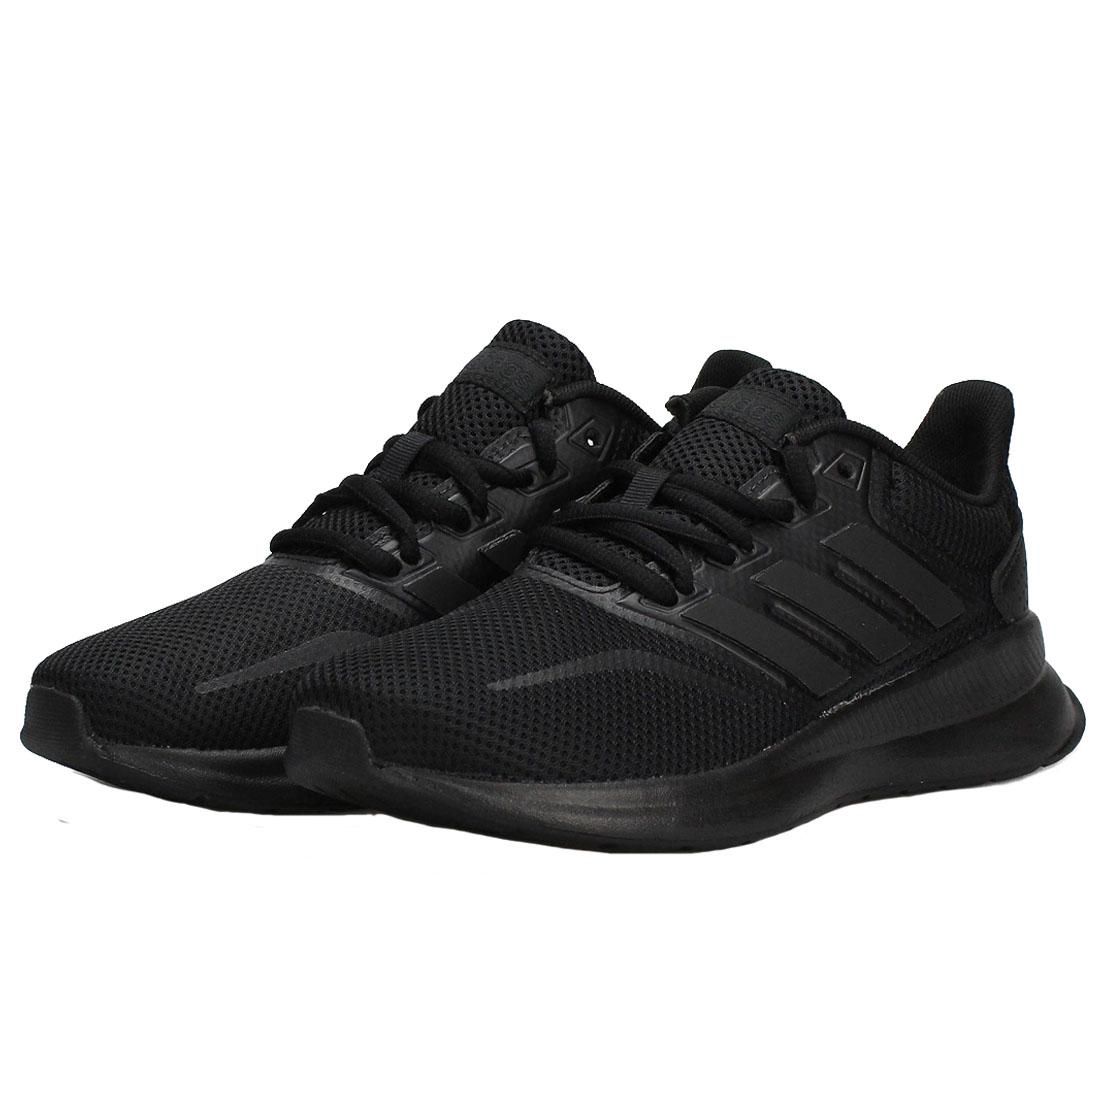 Details about adidas Runfalcon Black Childrens Running Trainers Boys Essentials Sports Shoes